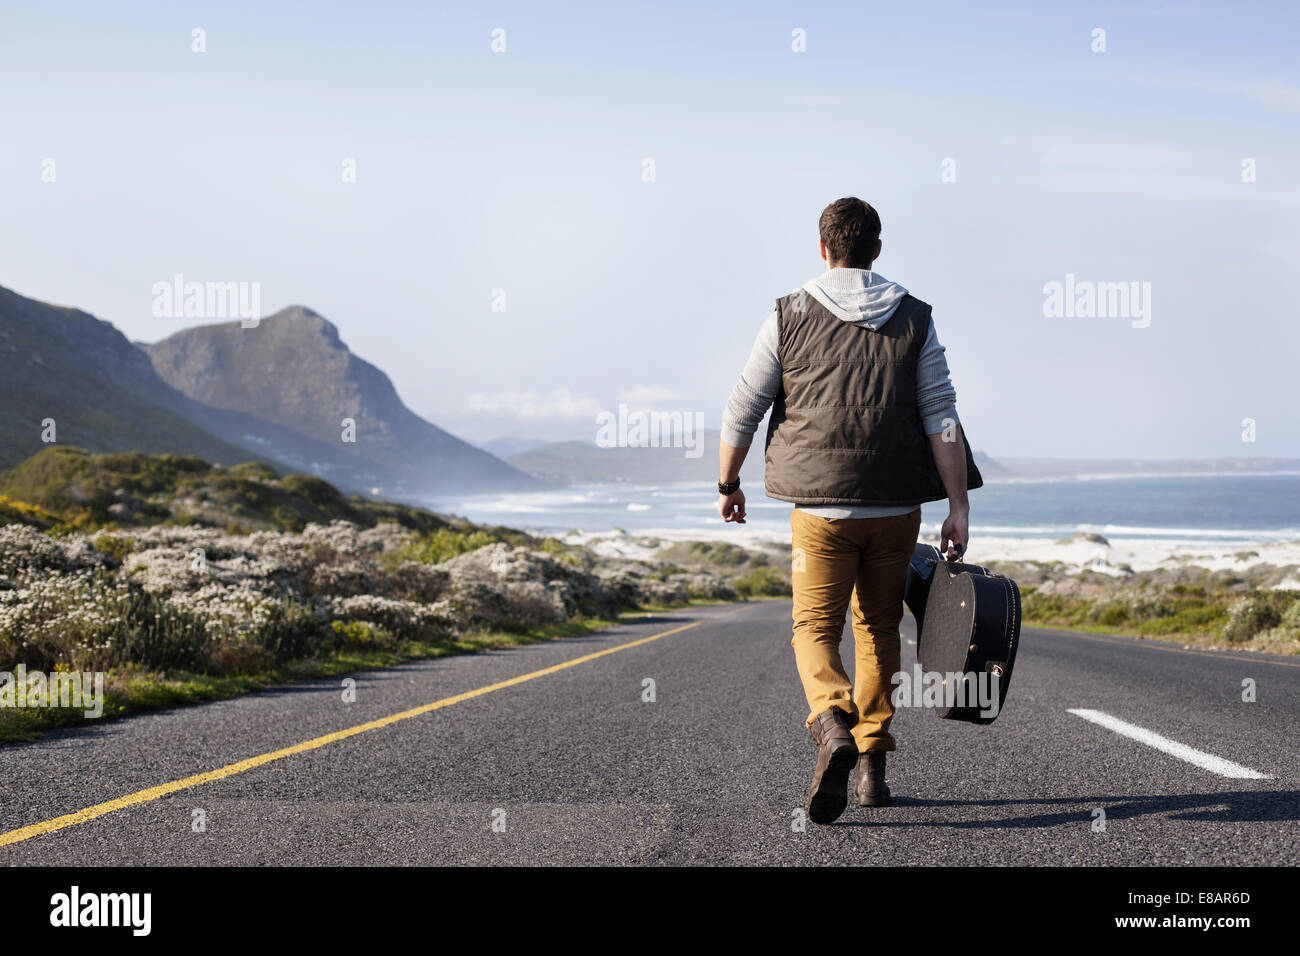 Rear view of young man with guitar case walking on coastal road, Cape Town, Western Cape, South Africa - Stock Image